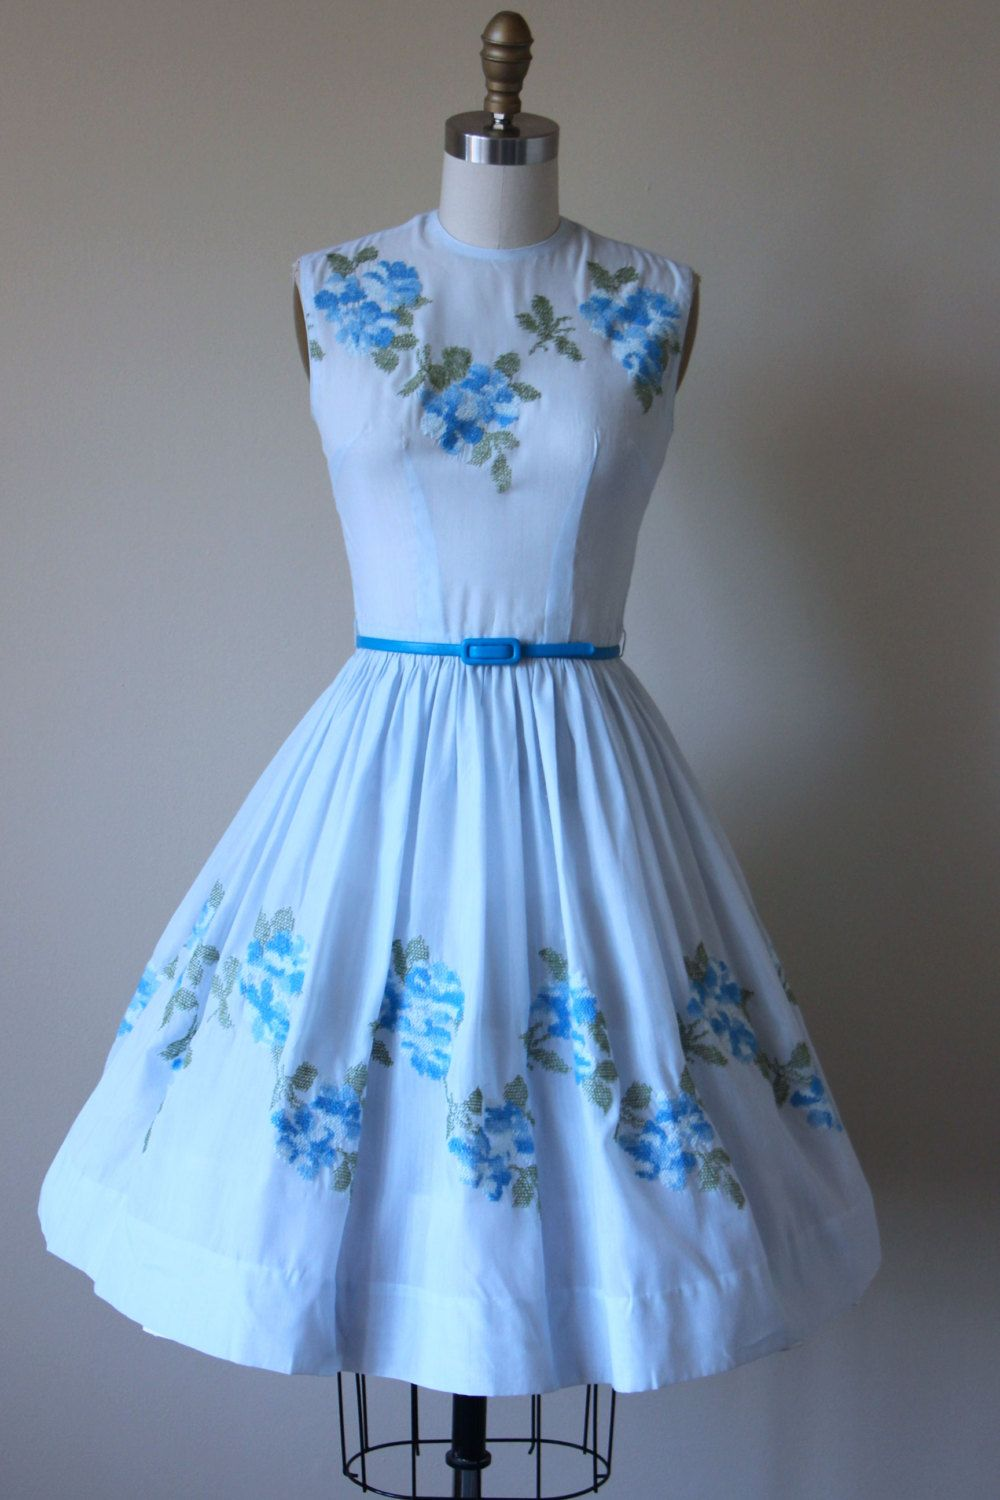 Pin by Trish Lyons on Vintage | Pinterest | Vintage dresses, 1950s ...